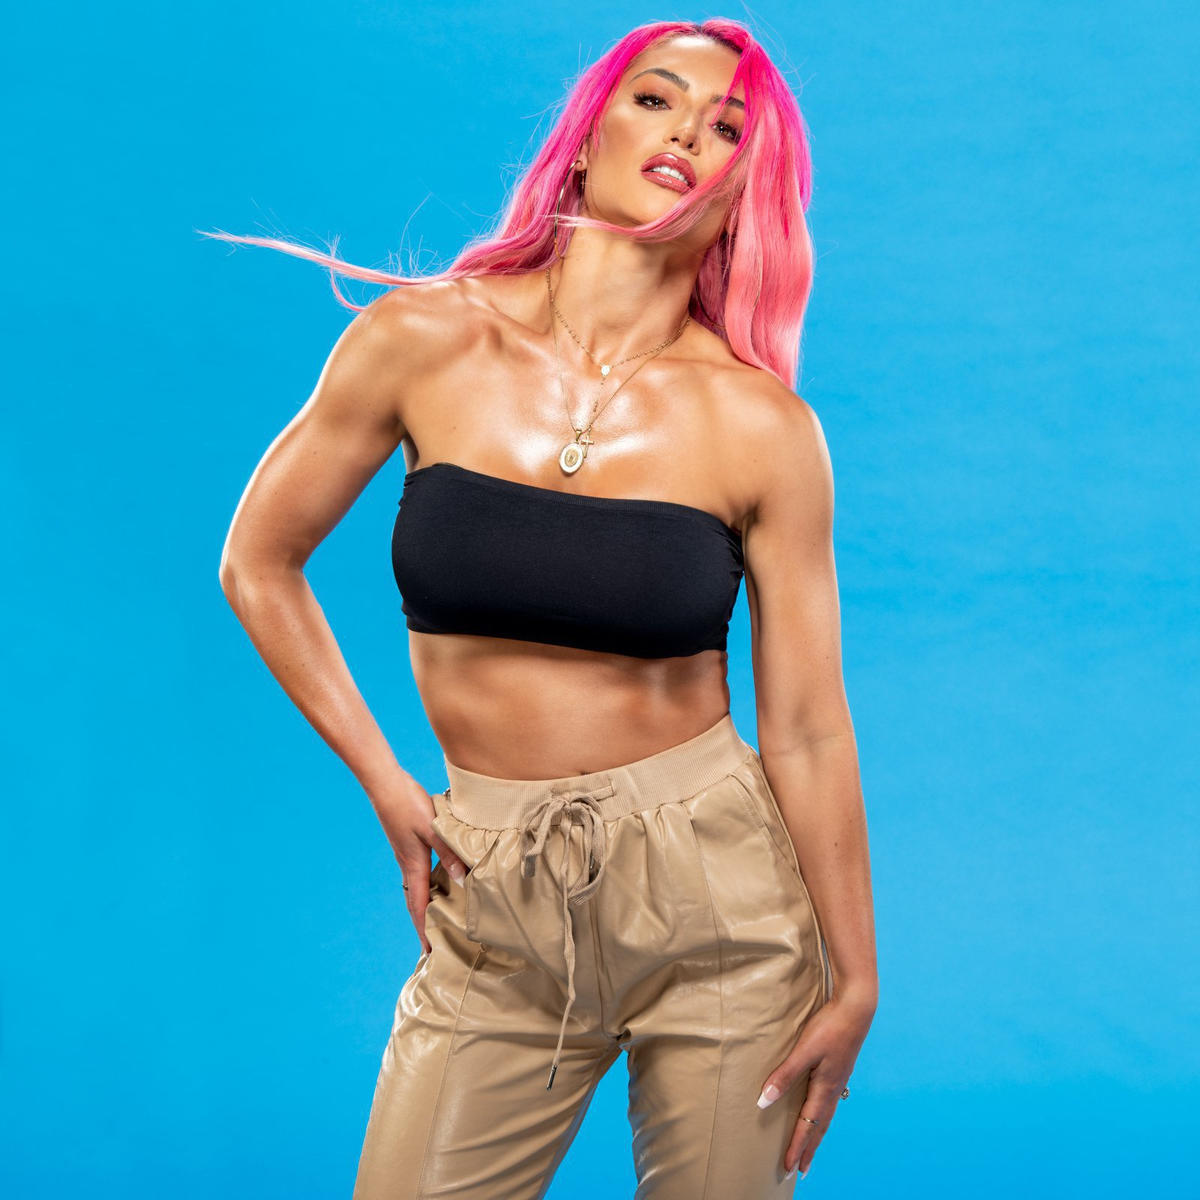 WWE Hypes Eva Marie's Return With Scorching Hot Photos 4